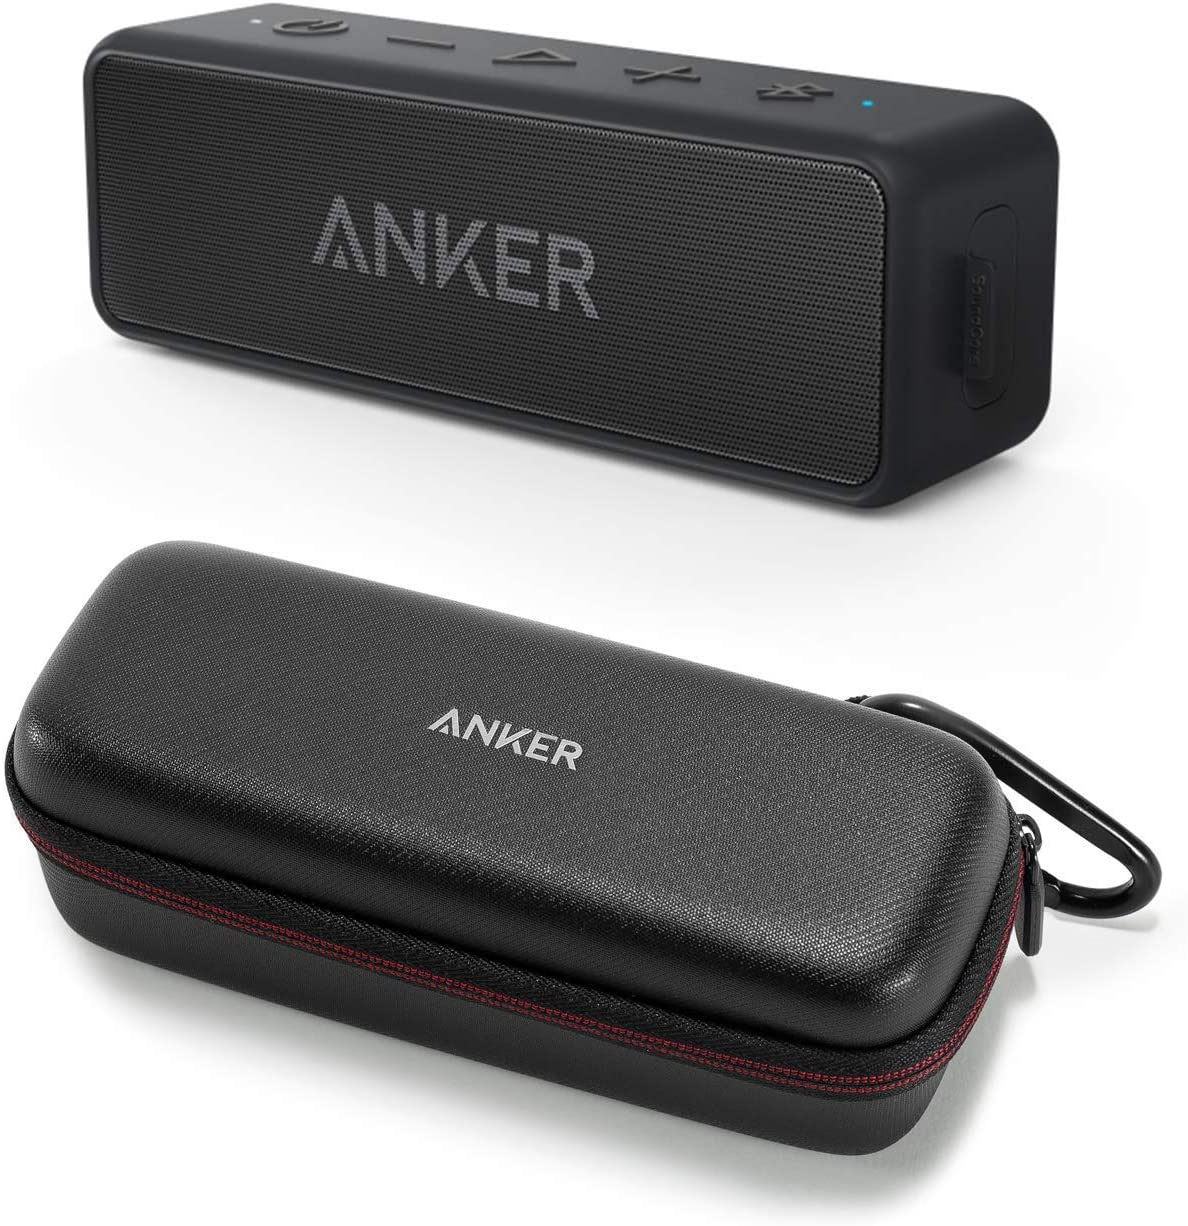 Anker Soundcore 2 Bluetooth Speaker Bundle with Official Travel Case